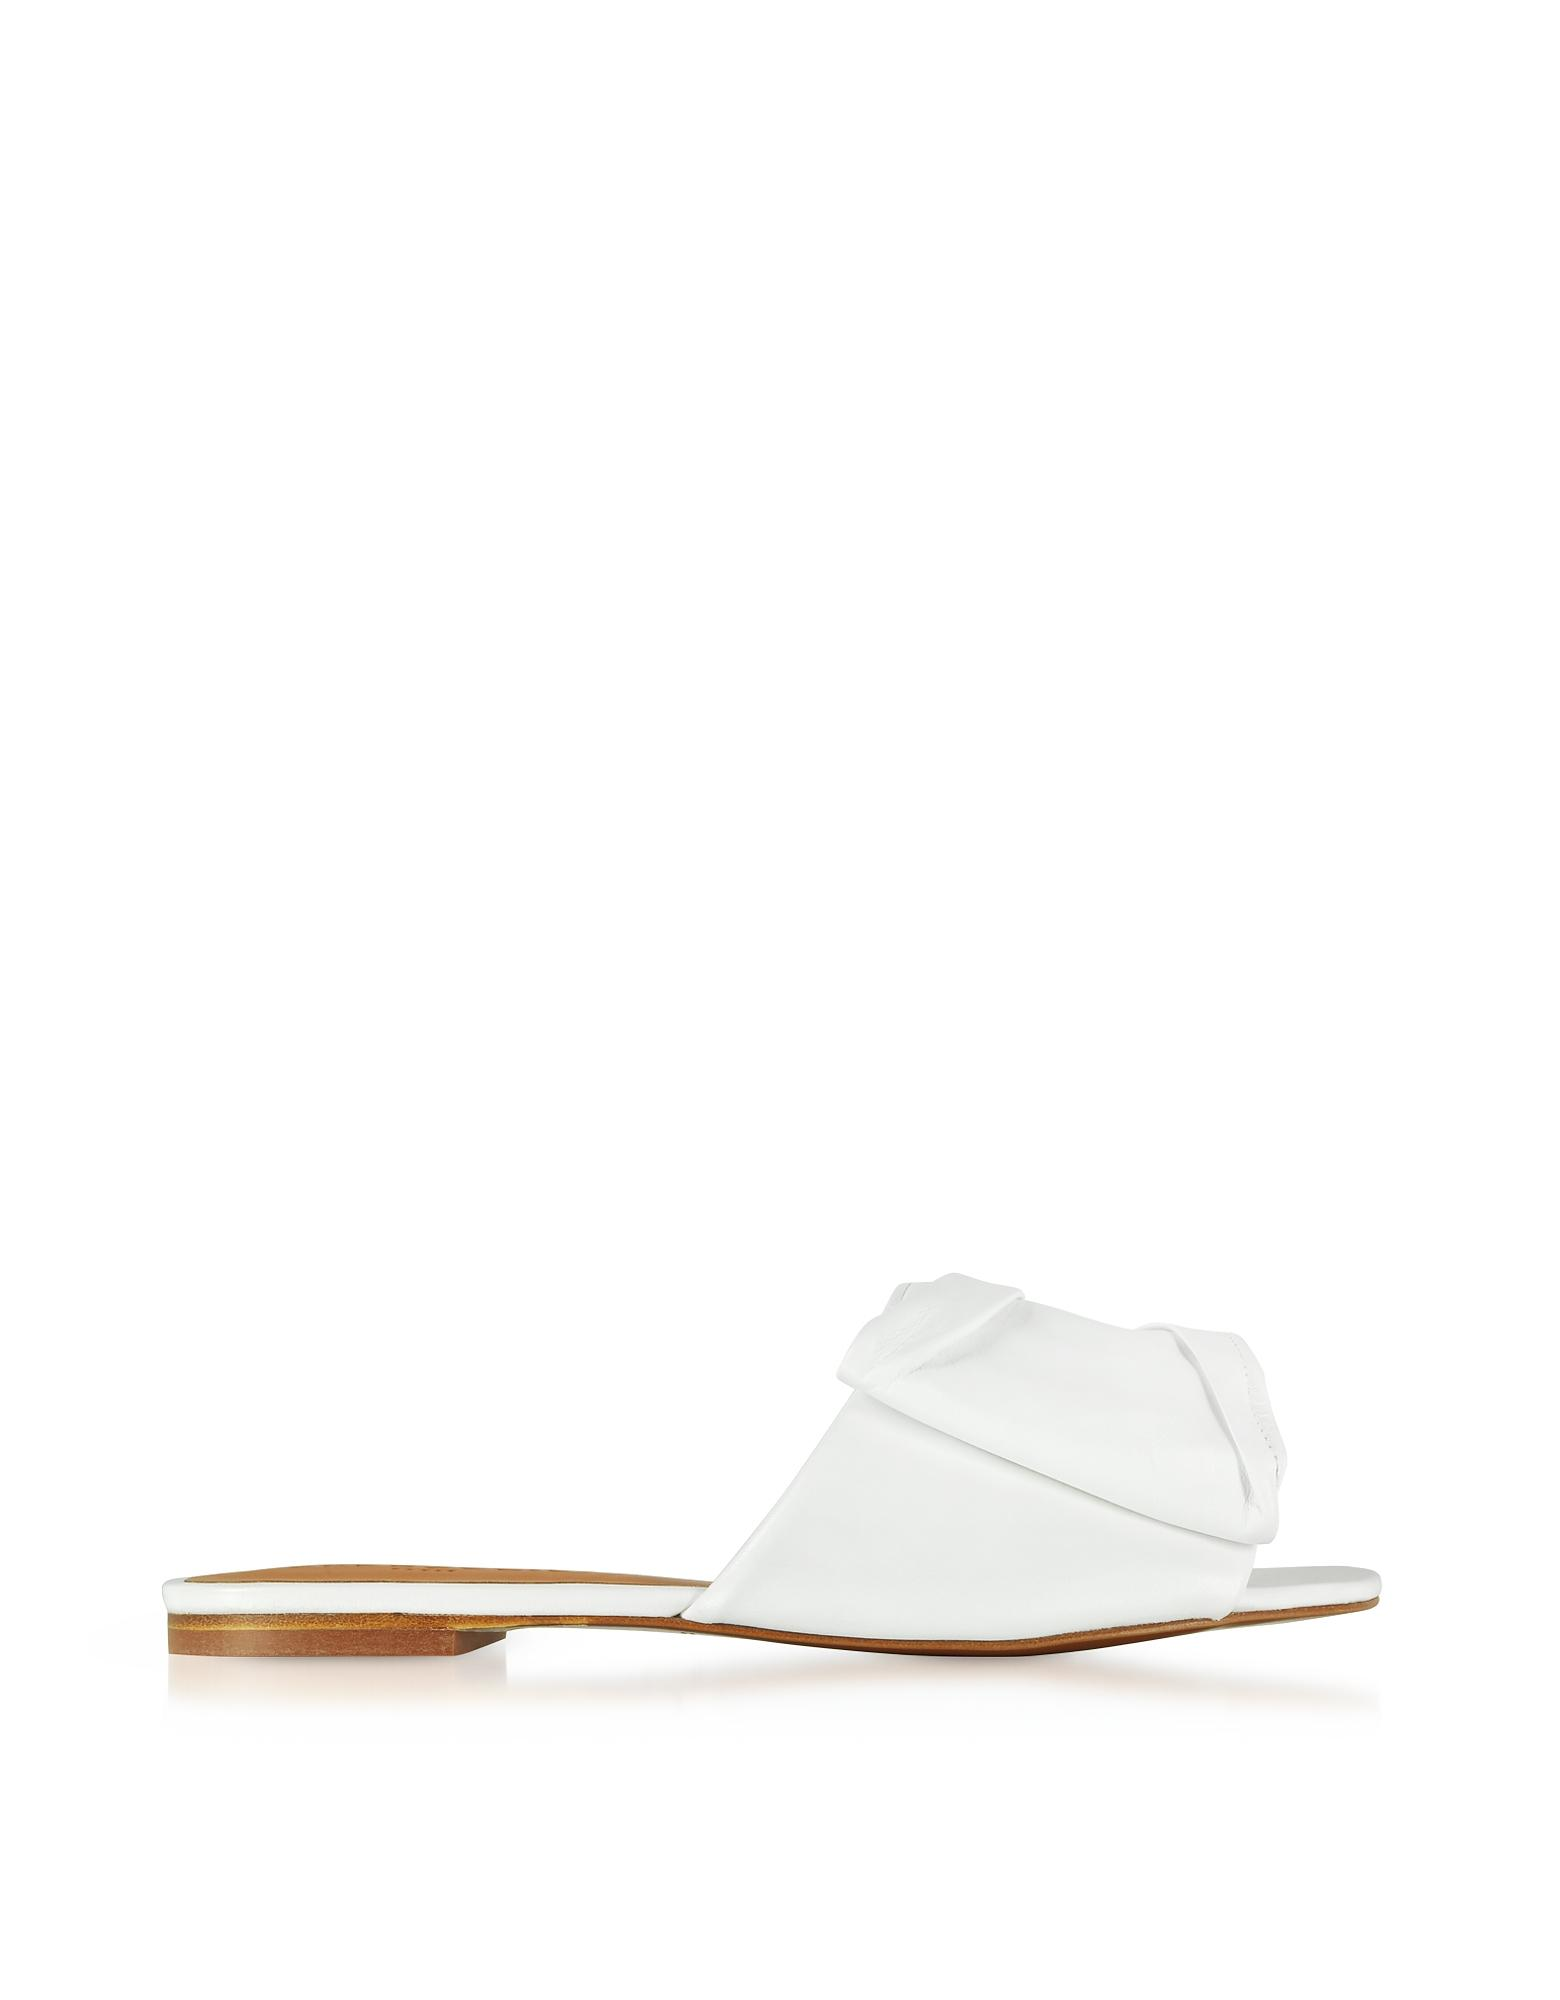 5913ed93016e Lyst - Robert Clergerie Igad White Leather Flat Sandals in White